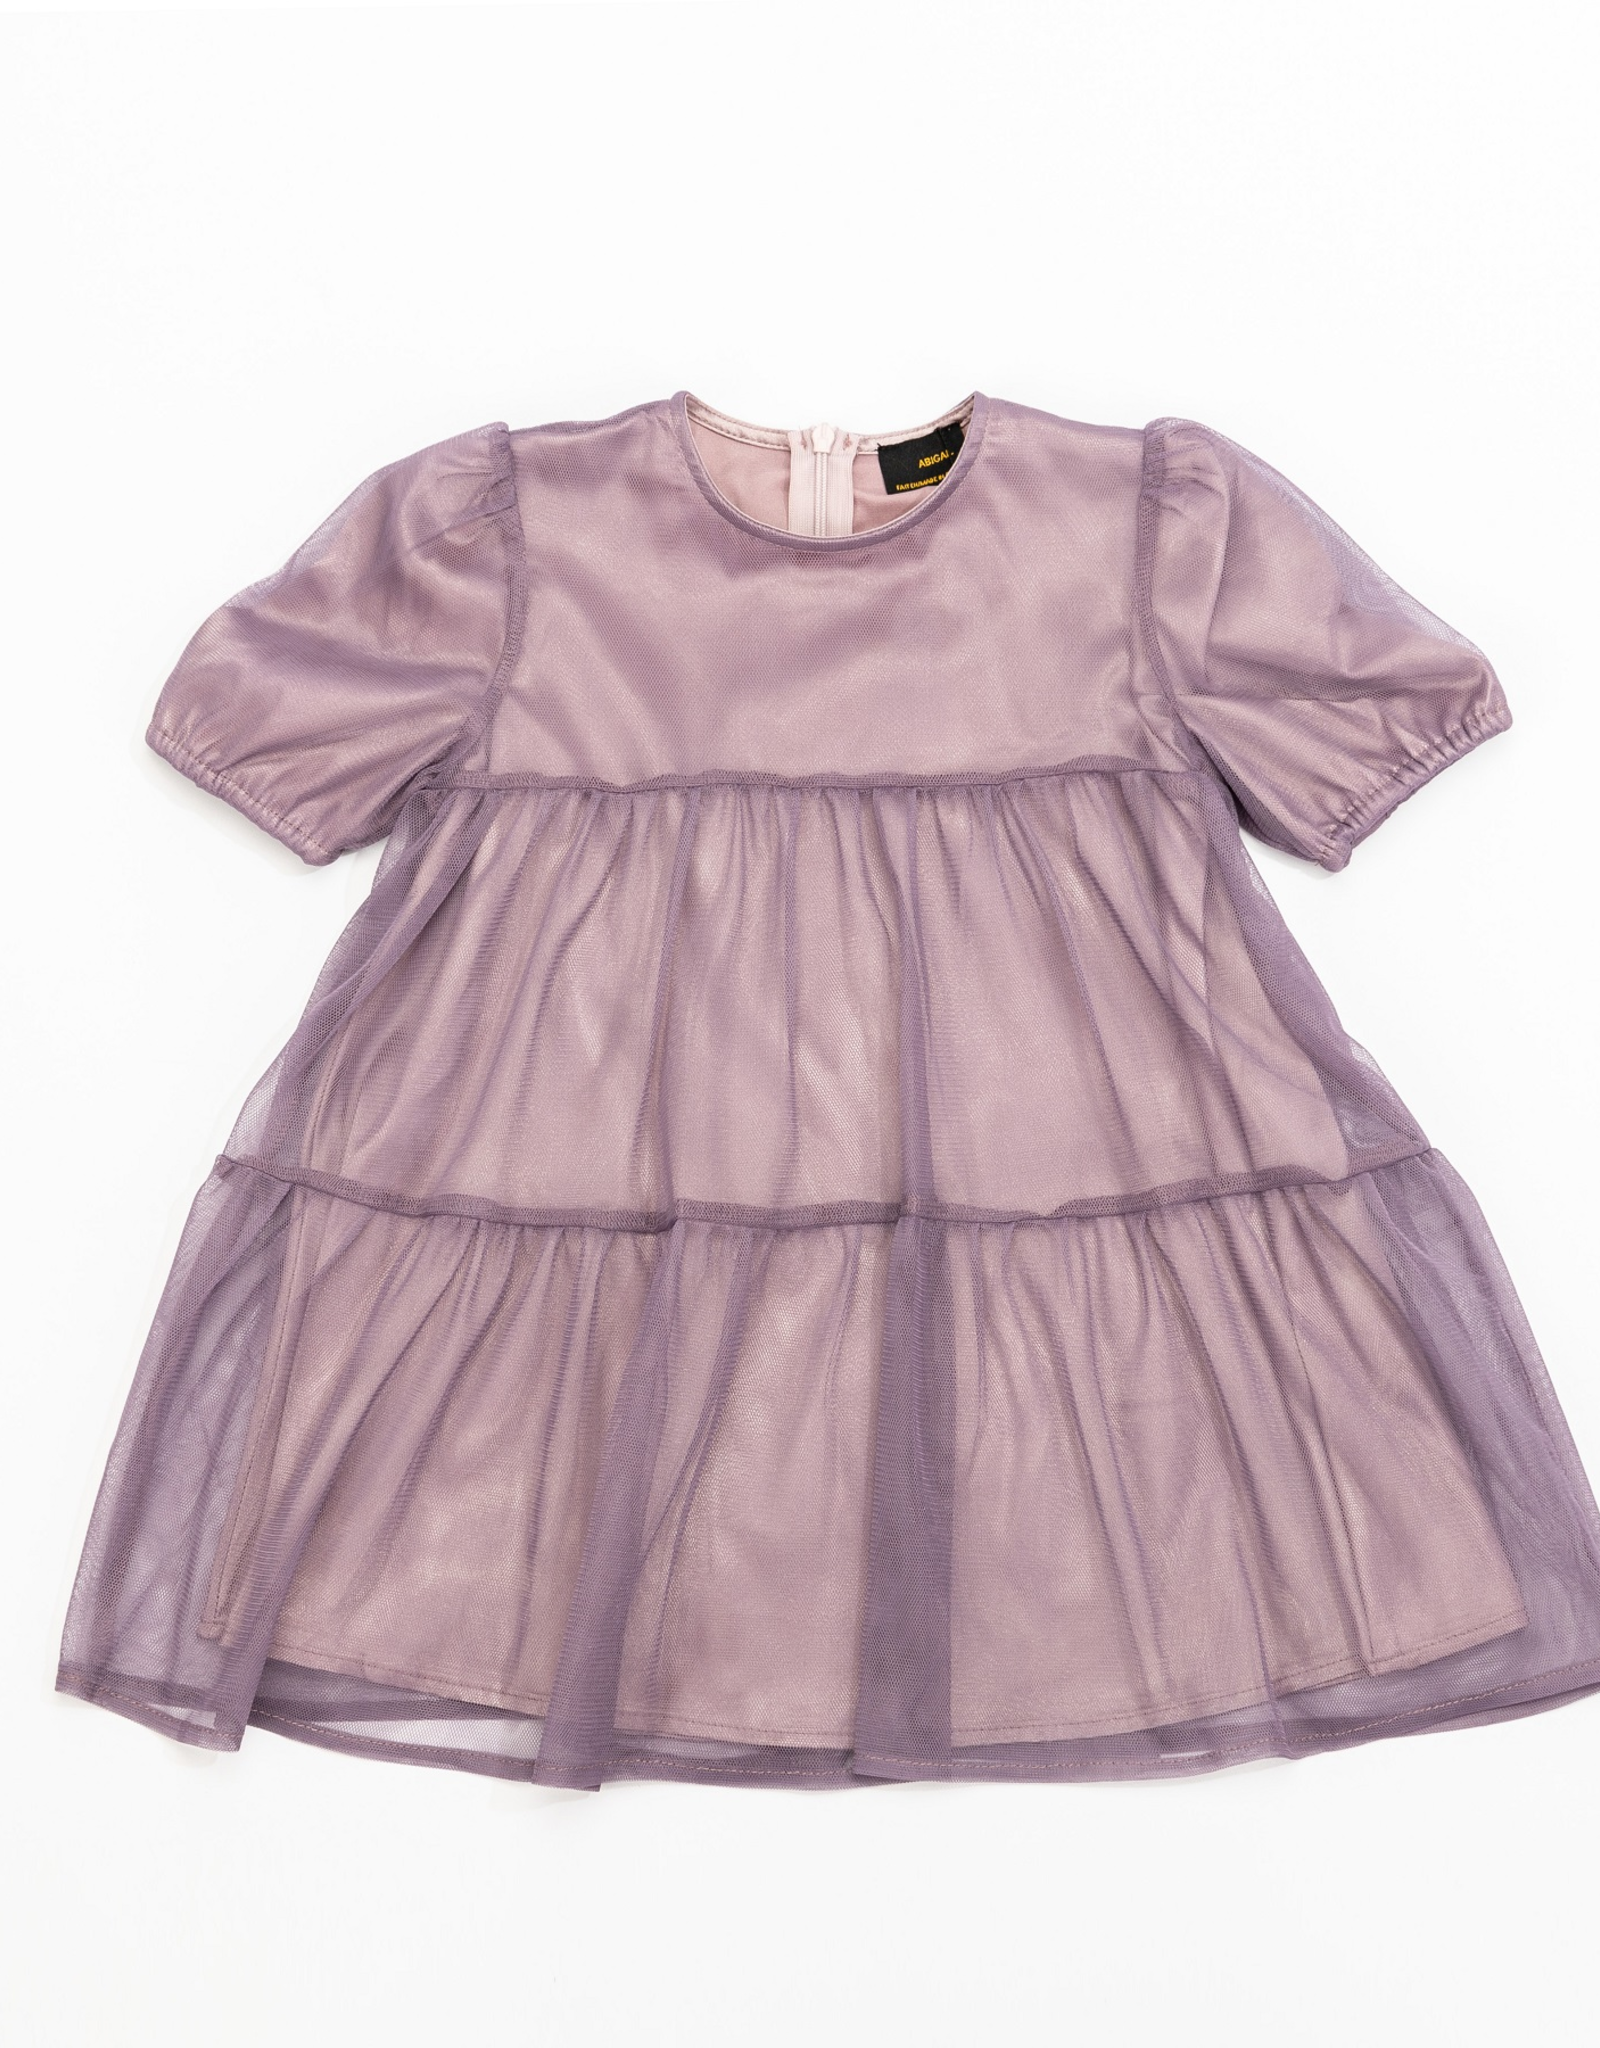 Abigail Abigail Tiered Dress with Tulle Overlay